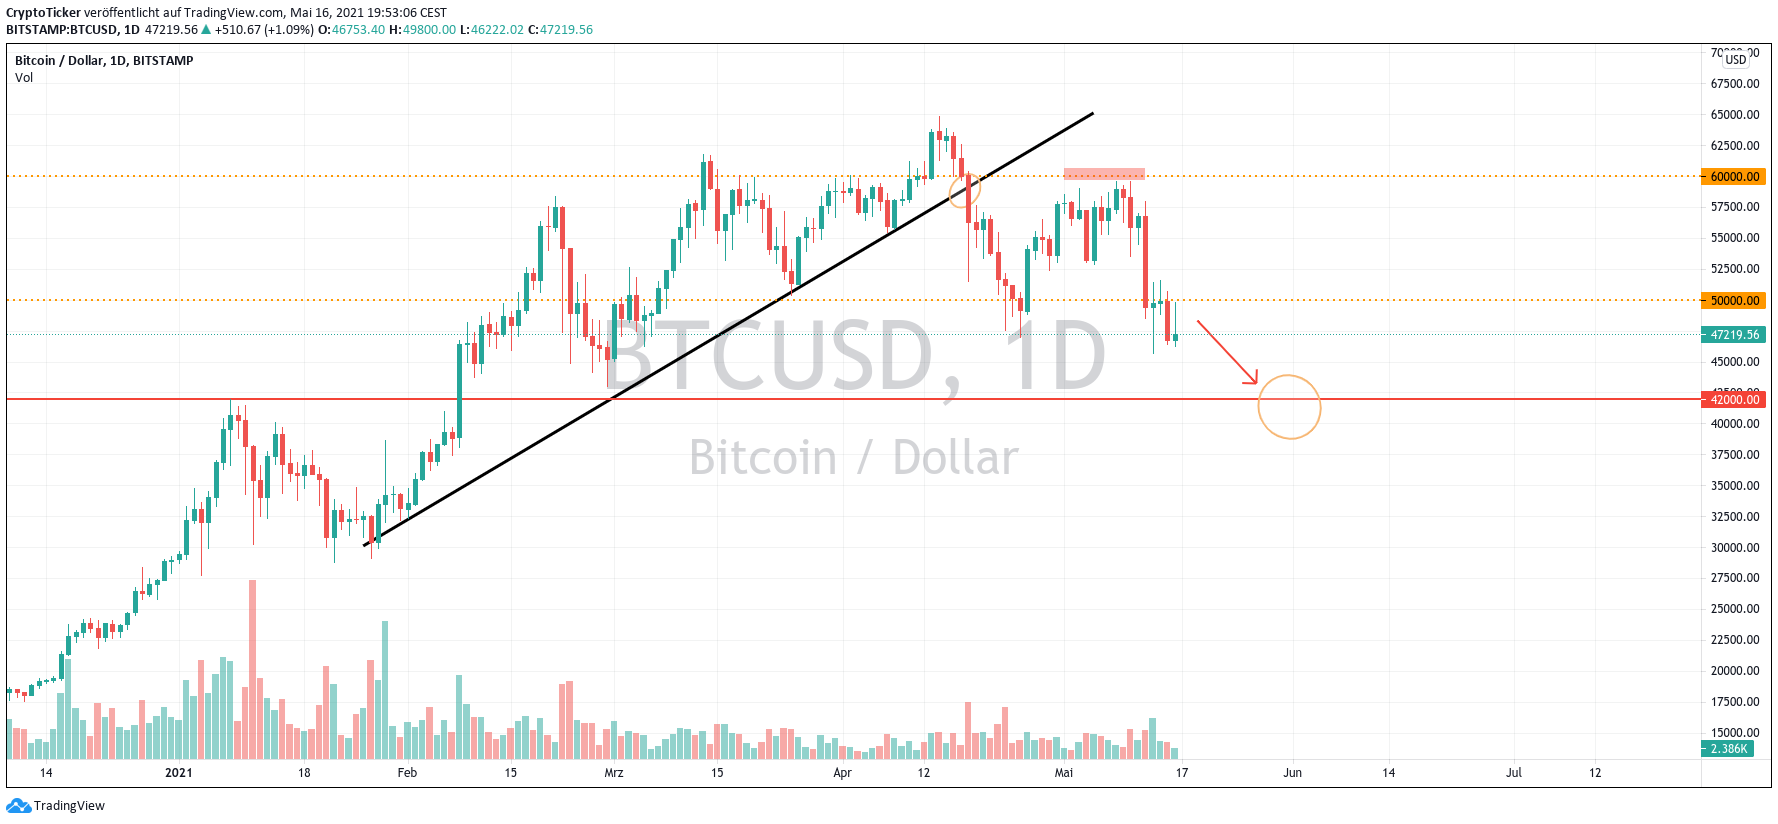 BTC/USD 1-day chart showing a potential further adjustment downwards for BTC price